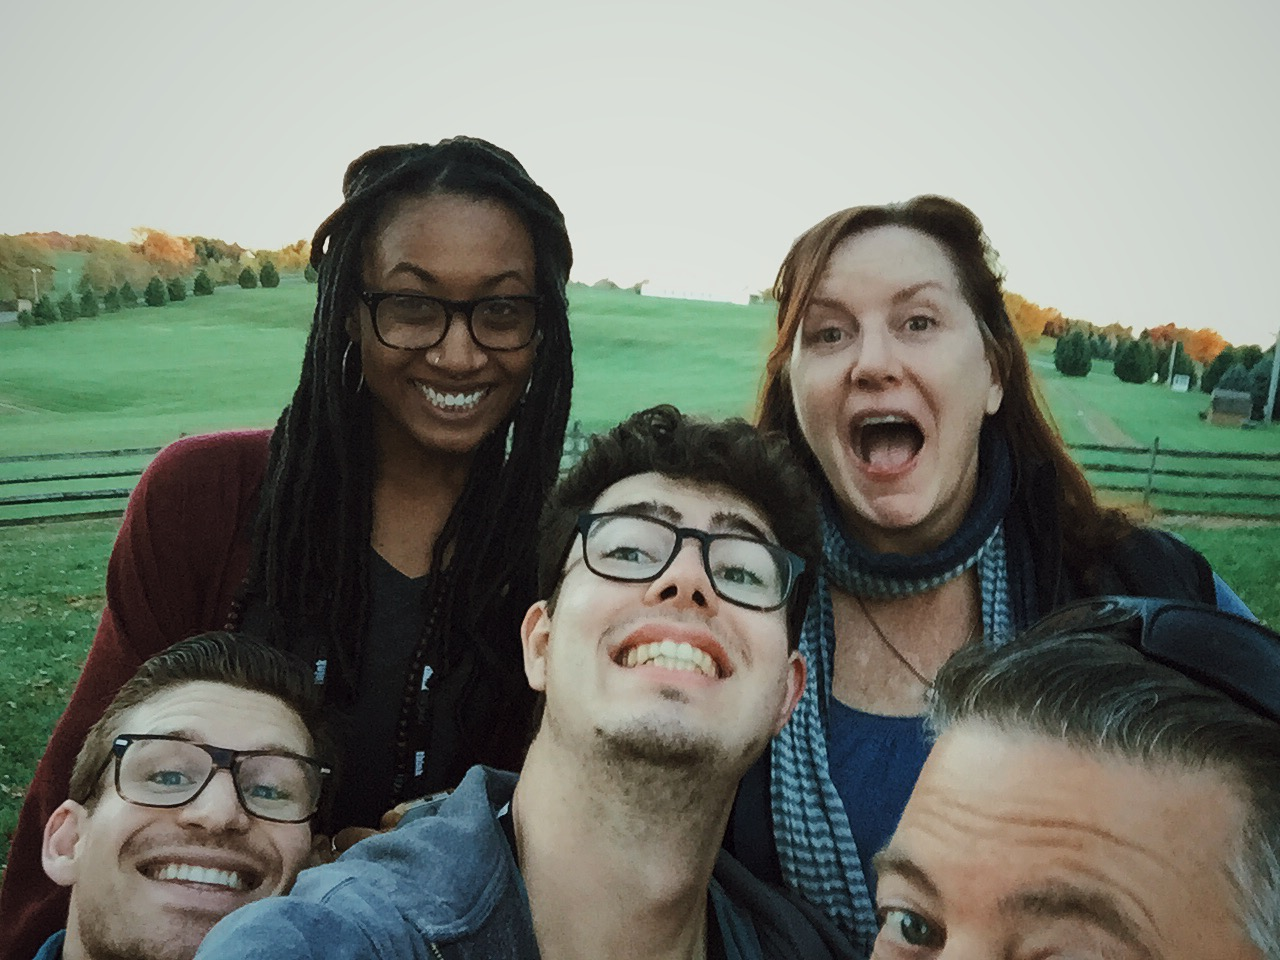 After a couple hours of photographing our assignments amazing chief Ruth Fremson picked us up and as we were driving we passed the memorial of the first Woodstock festival. It was amazing. We got out of the car and snapped an epic selfie. ( Stuart, Sophia, Me, Ruth, Jeremy)